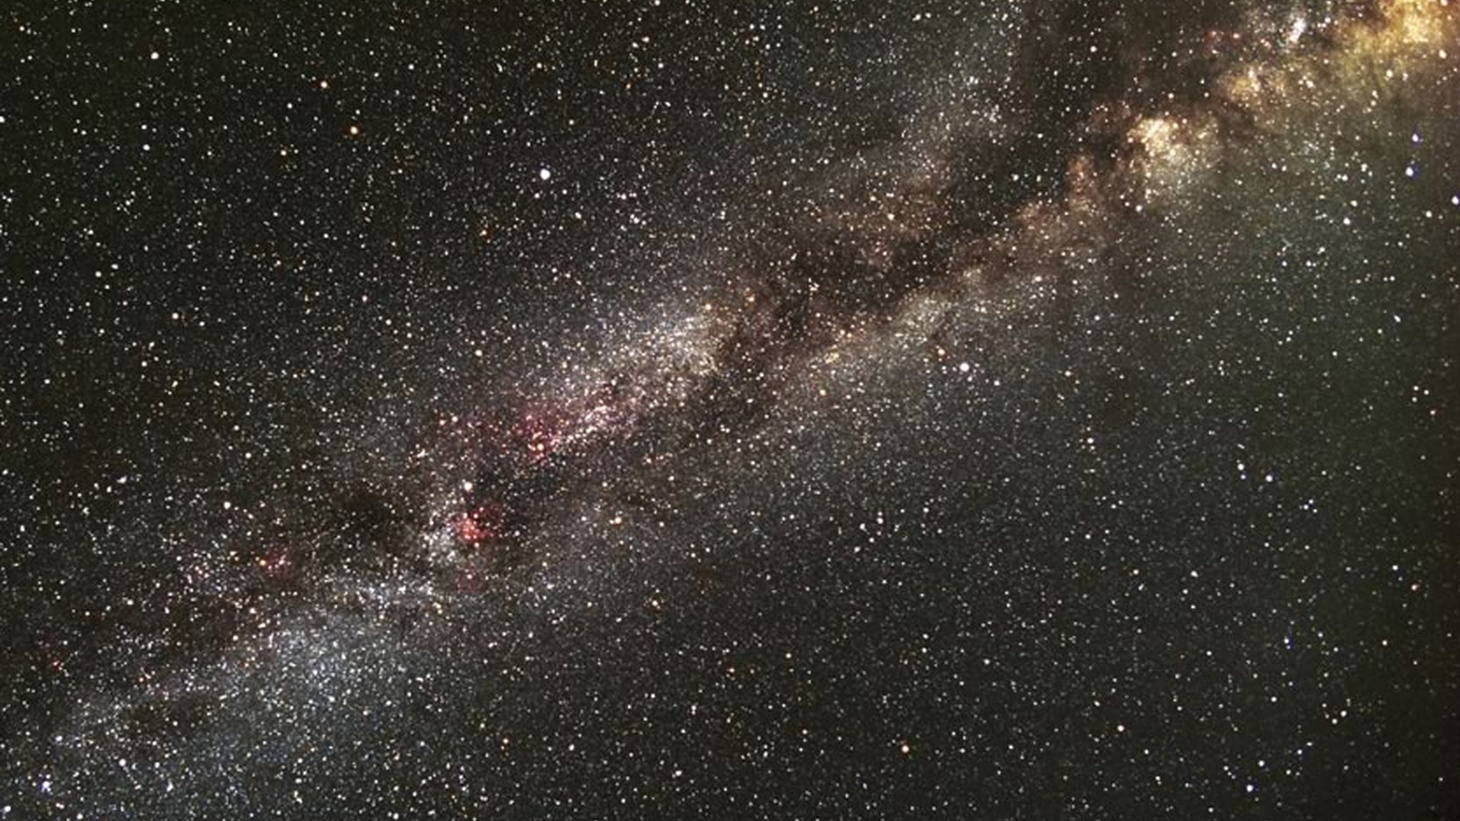 For some years, astronomers have been studying a  source of light  in the Milky Way that seems to have no natural explanation. Is there intelligent life elsewhere in the universe? It's an ancient question that's always worth asking.     Photo:  Carter Roberts